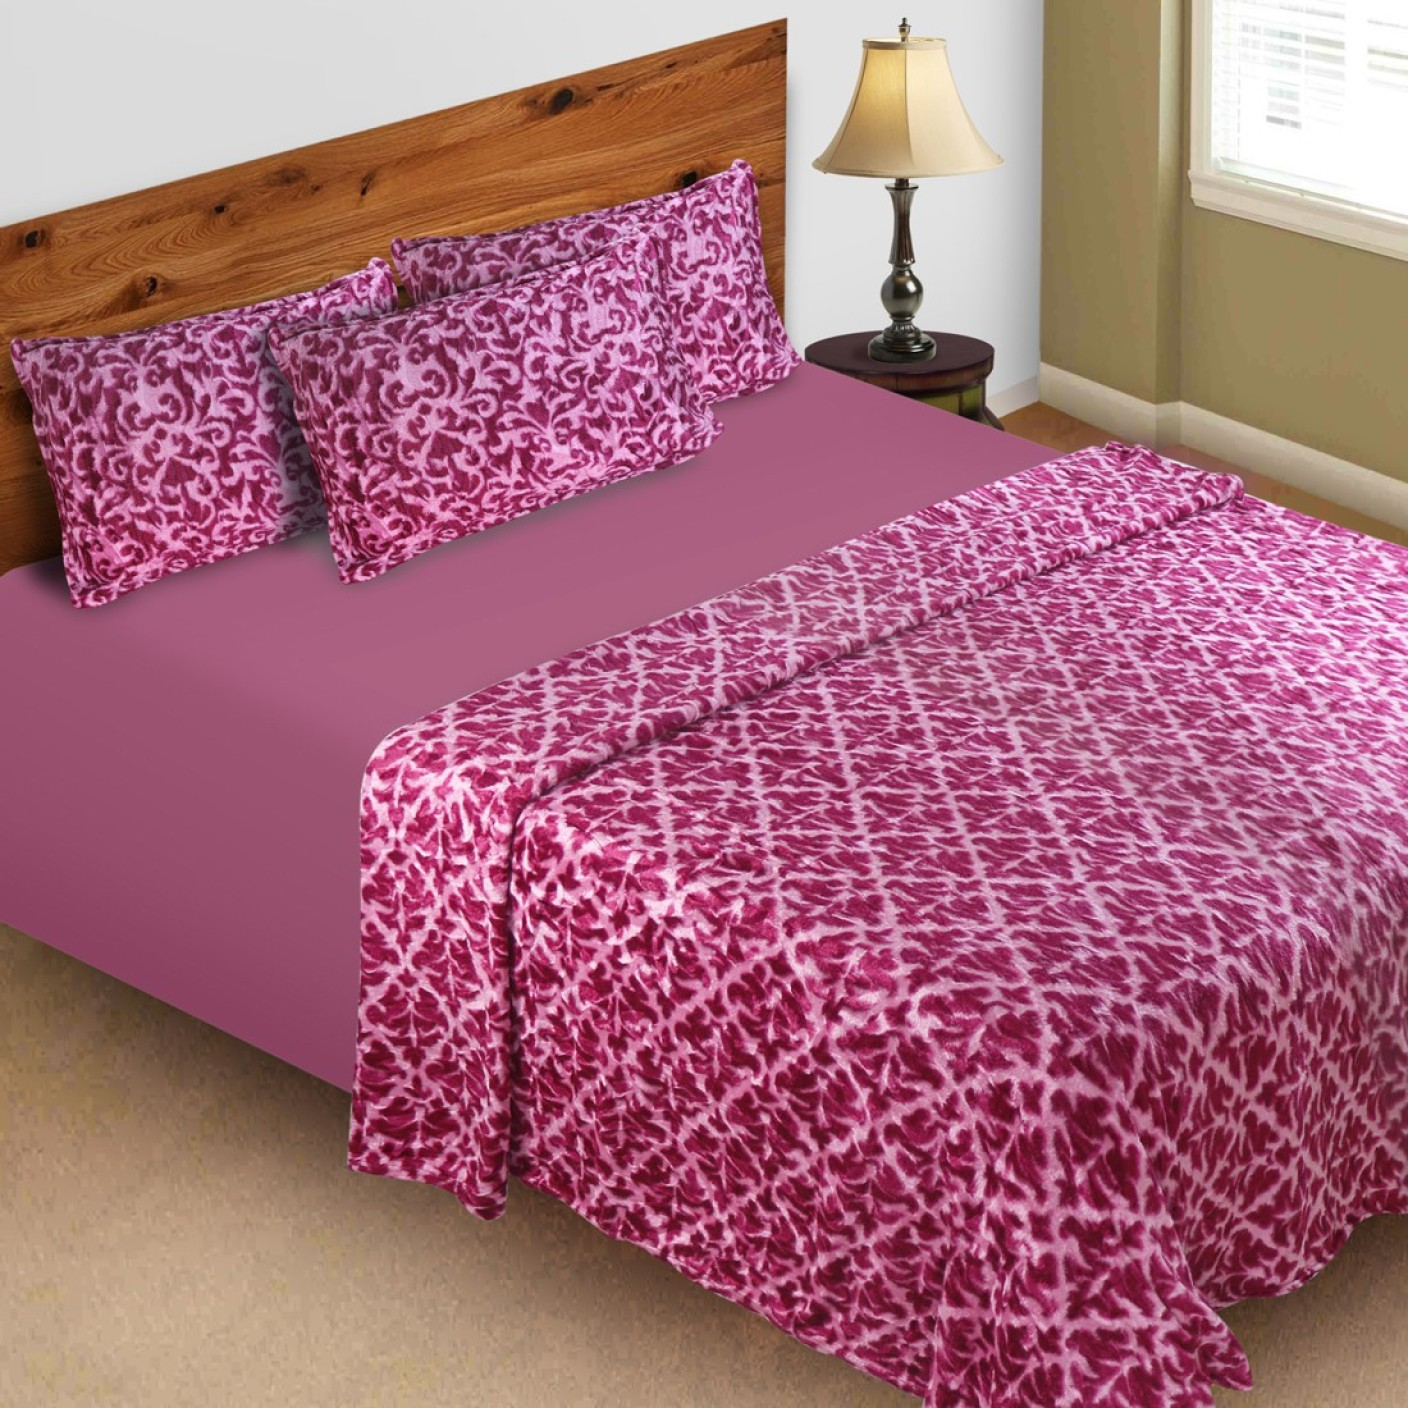 Barbie 3D Printed Double Quilt, Comforter Pink (AC Quilt, 1 AC Quilt with 2  pillow covers)